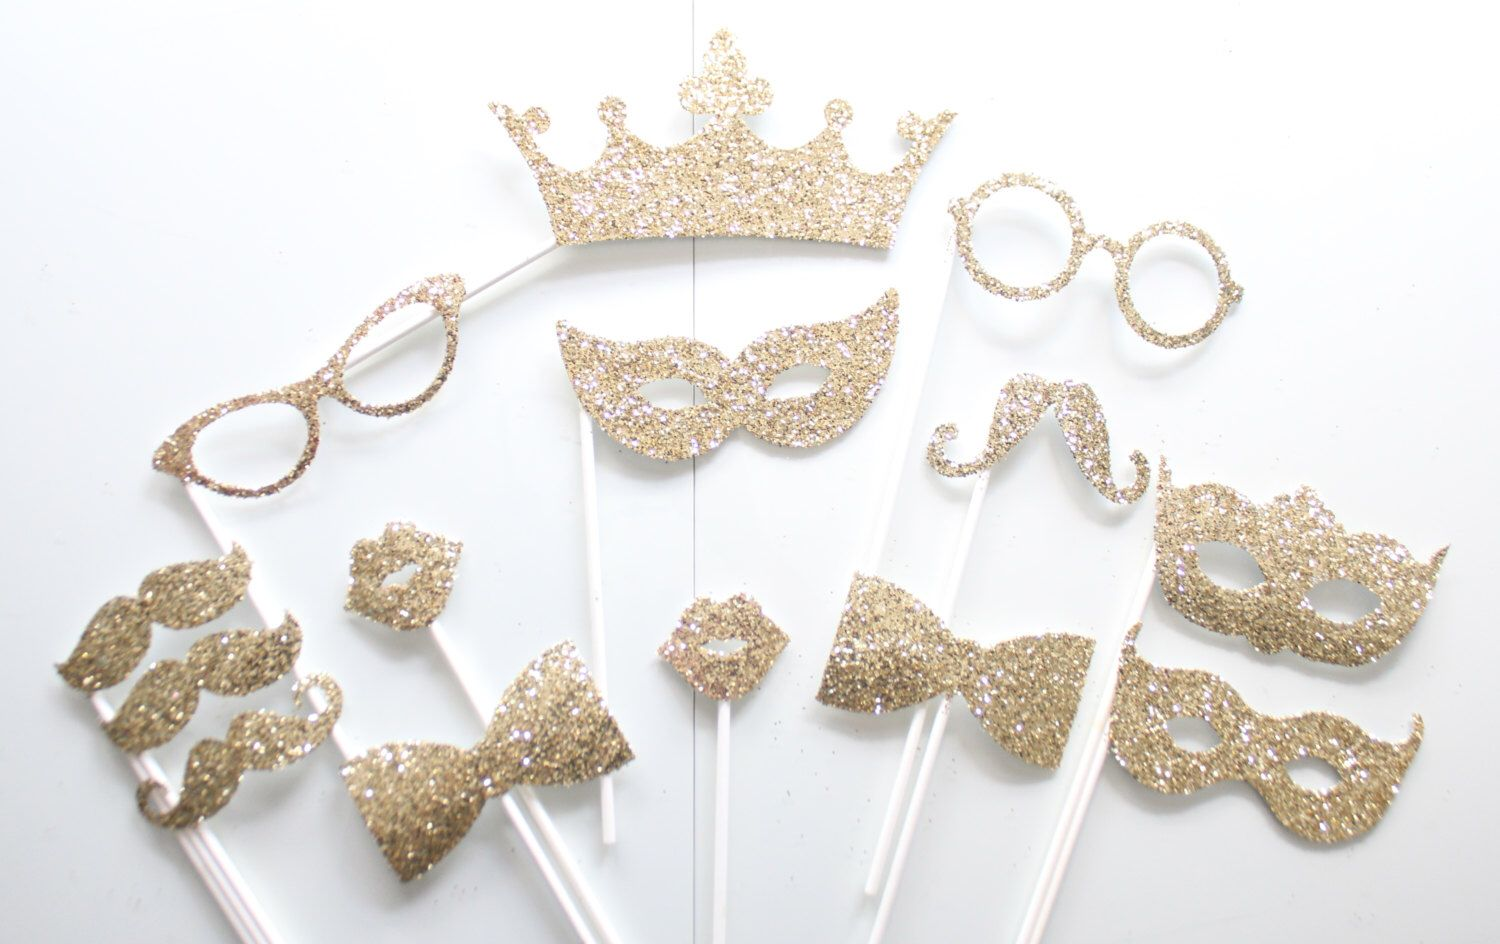 14Pc *Glitter Photo Booth Props/Photobooth Props by ThePartyGirlStudio on Etsy https://www.etsy.com/listing/233631709/14pc-glitter-photo-booth-propsphotobooth